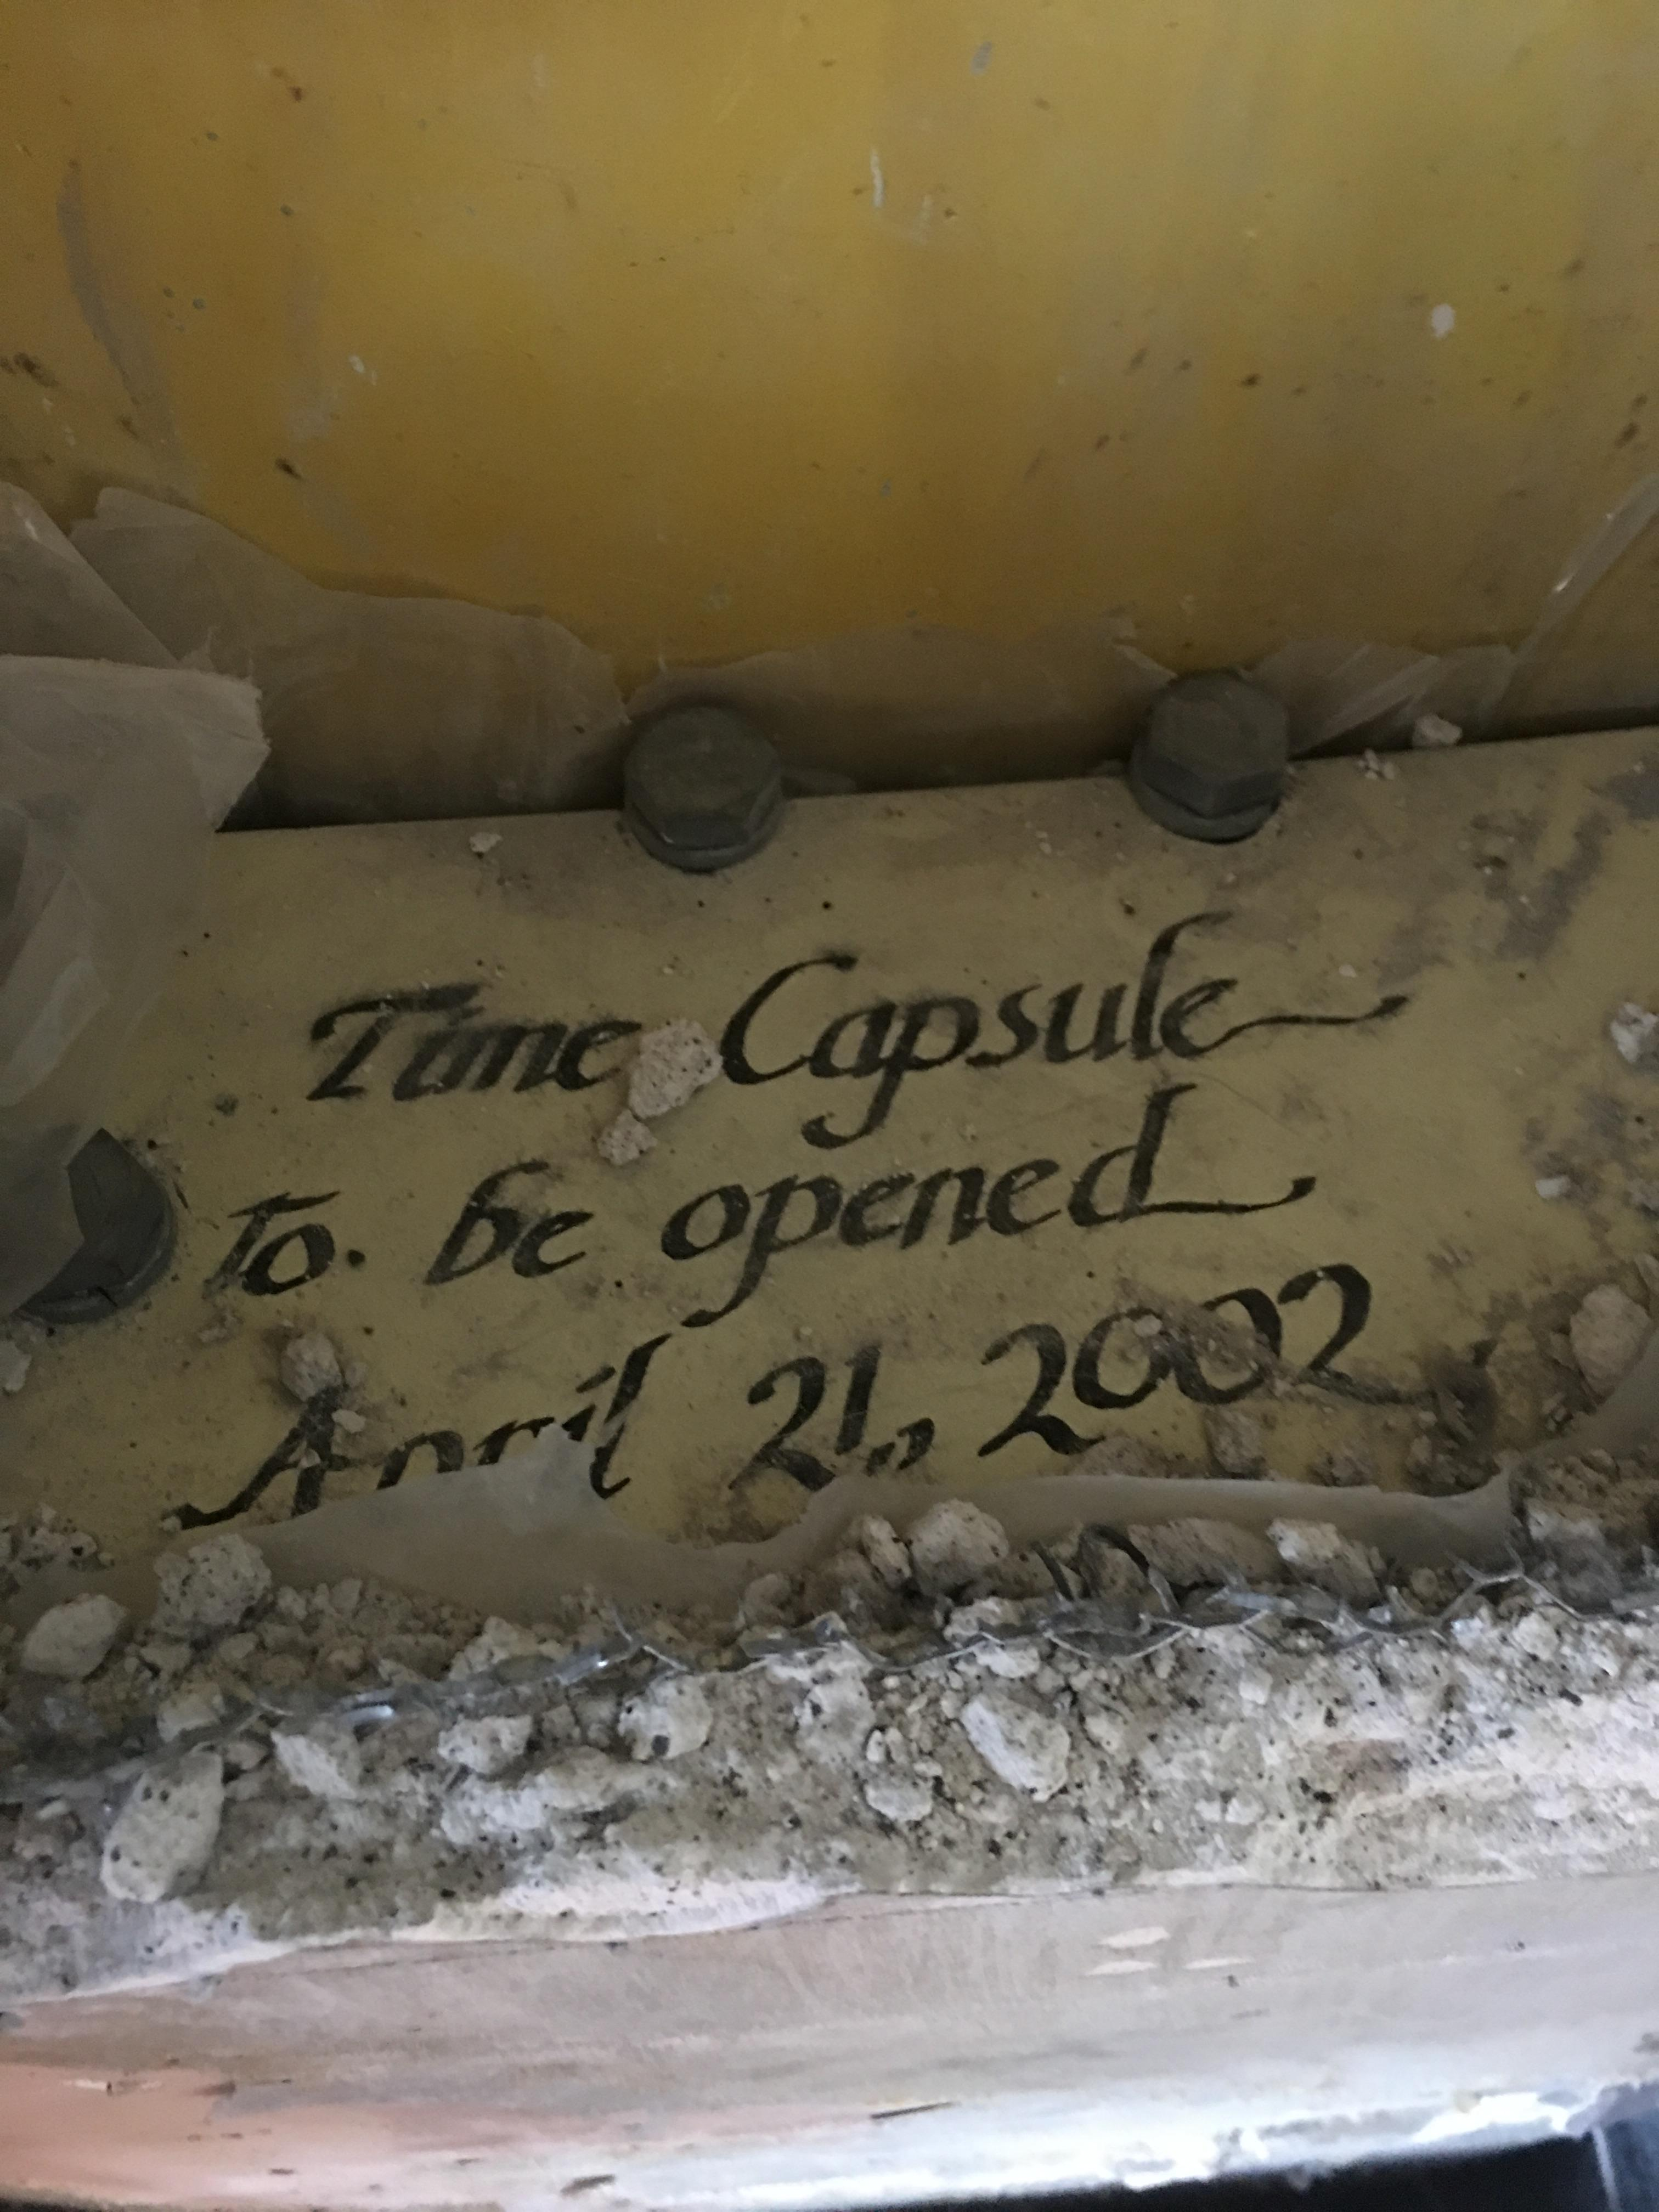 A time capsule from 1982 was discovered this week on the observation deck of the Space Needle. (Space Needle photograph)